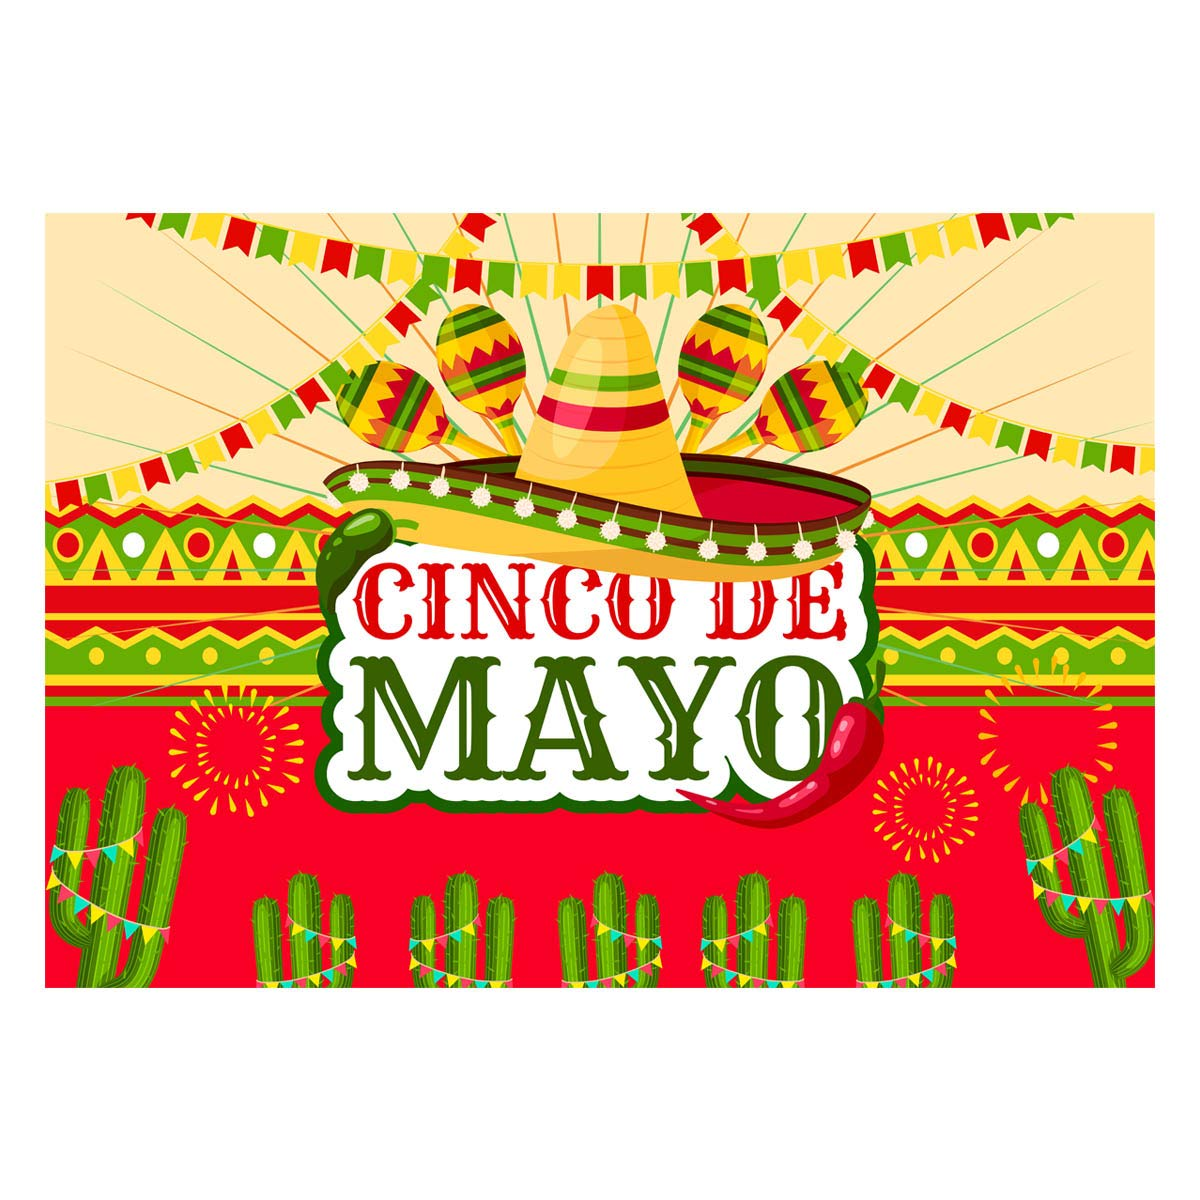 Allenjoy 7x5ft Mexican Theme Photography Backdrop Cinco de Mayo Party  Supplies Colorful FlaFiesta Background Banner Decorations Dress up Photo  Booth